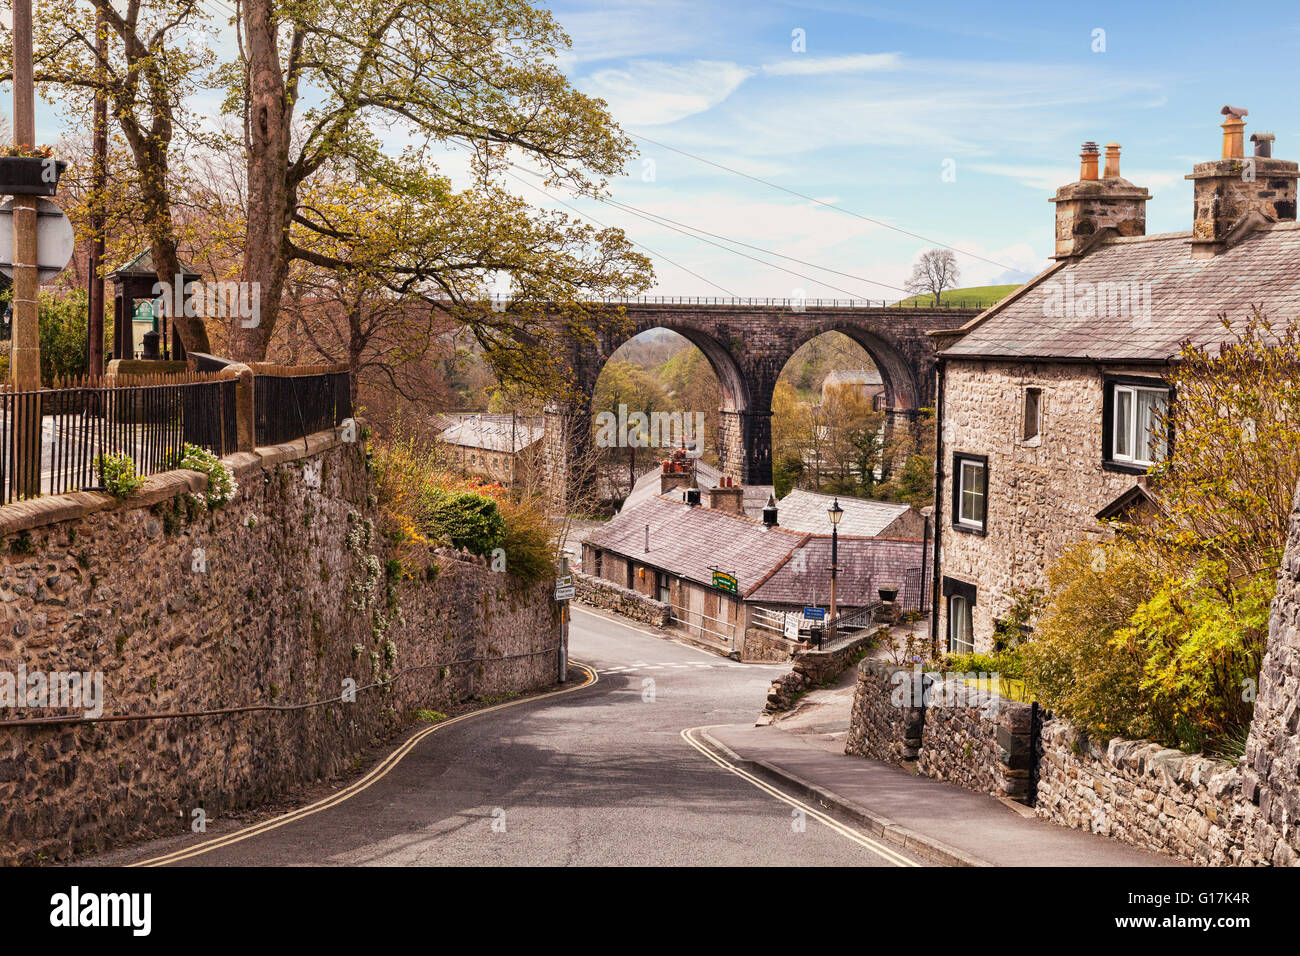 The village of Ingleton, with its cottages and railway viaduct, Yorkshire Dales National Park, North Yorkshire, - Stock Image